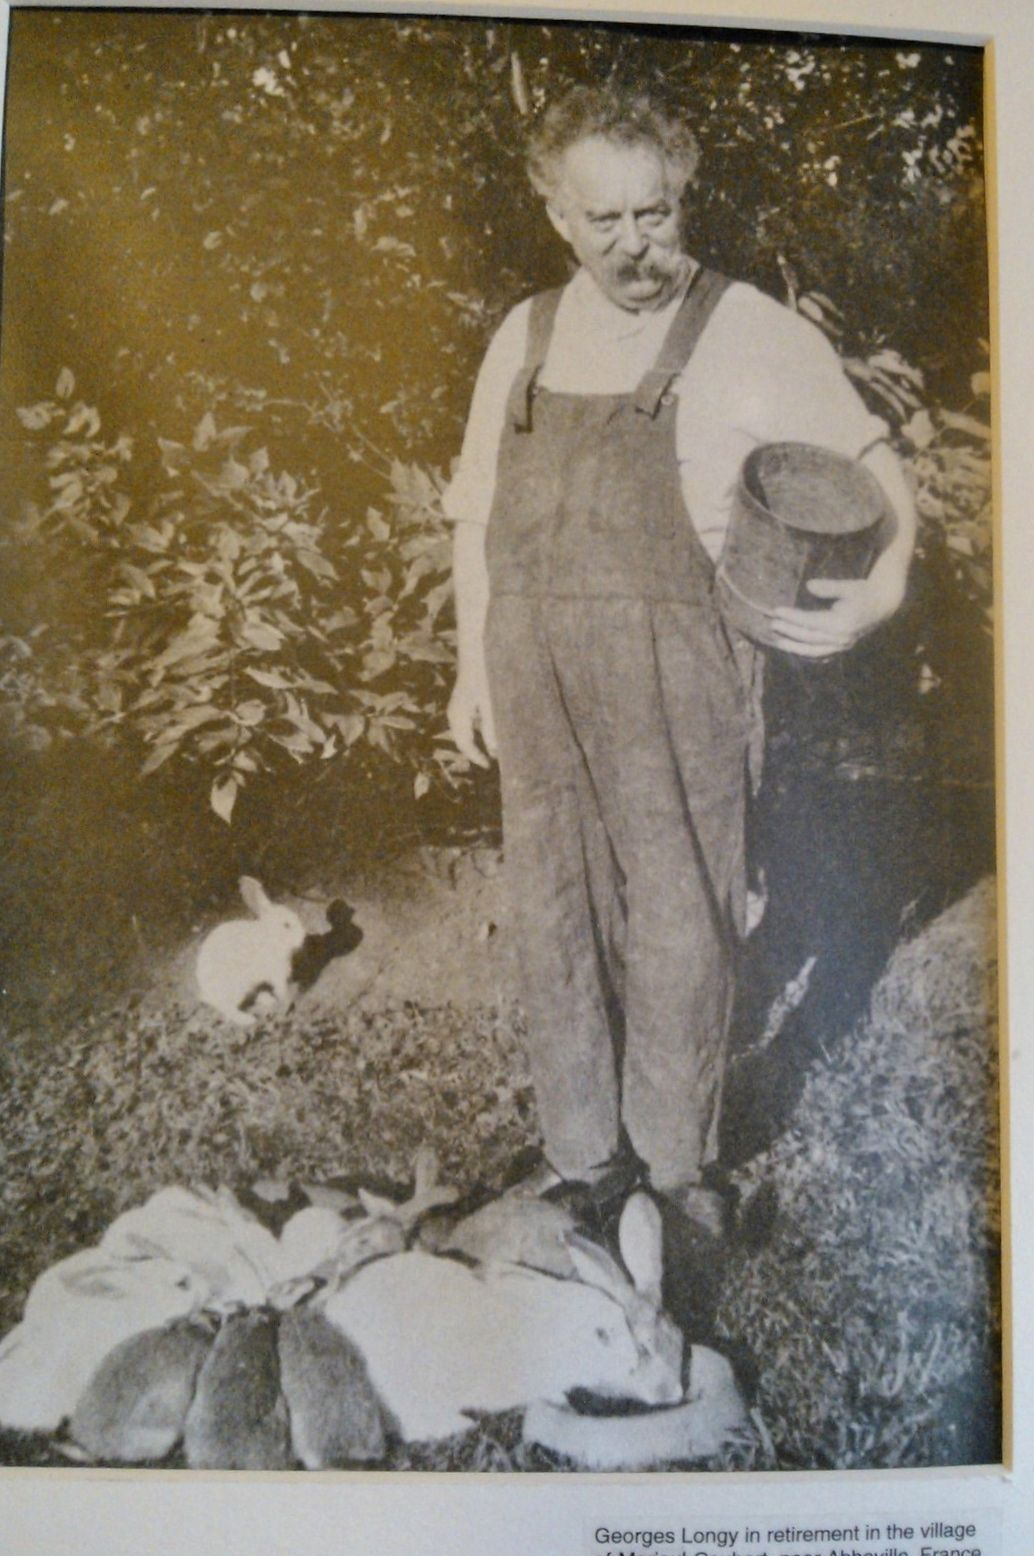 in his retirement, Mr. Longy pictured with his rabbits